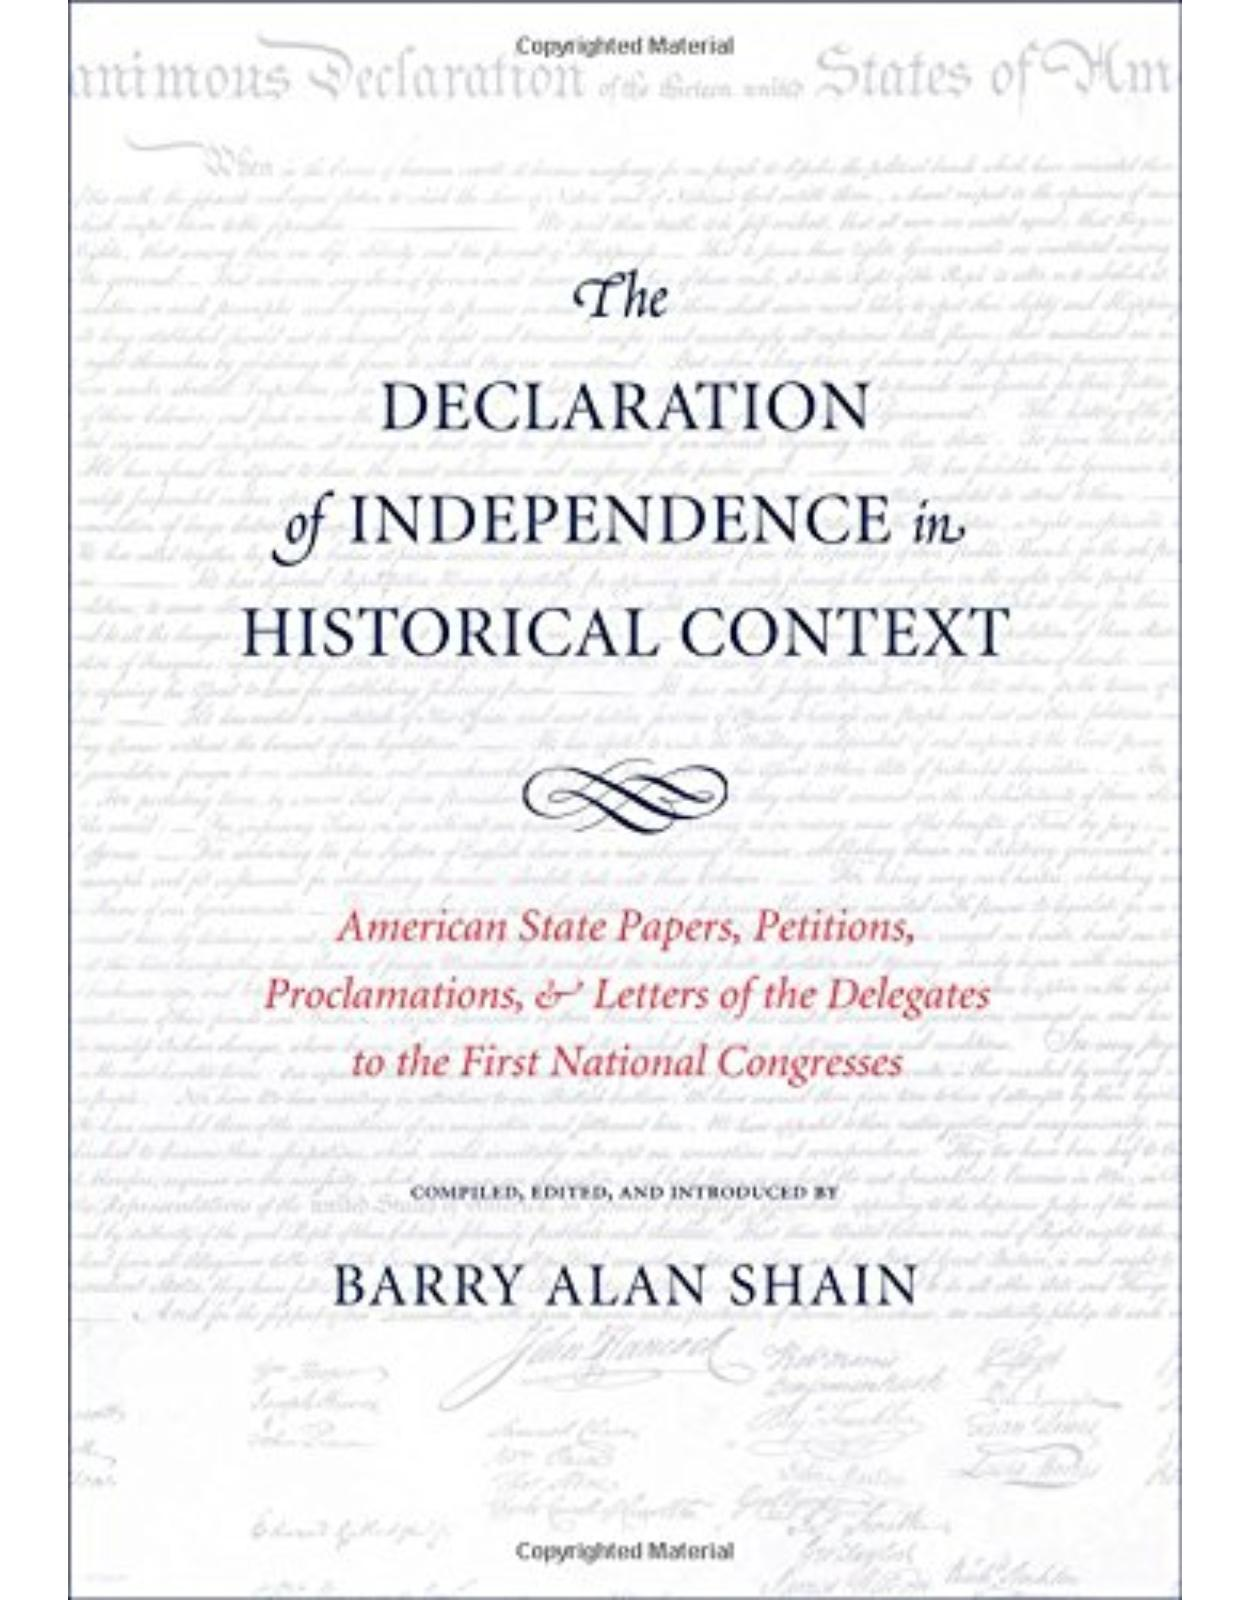 Declaration of Independence in Historical Context. American State Papers, Petitions, Proclamations, and Letters of the Delegates to the First National Congresses